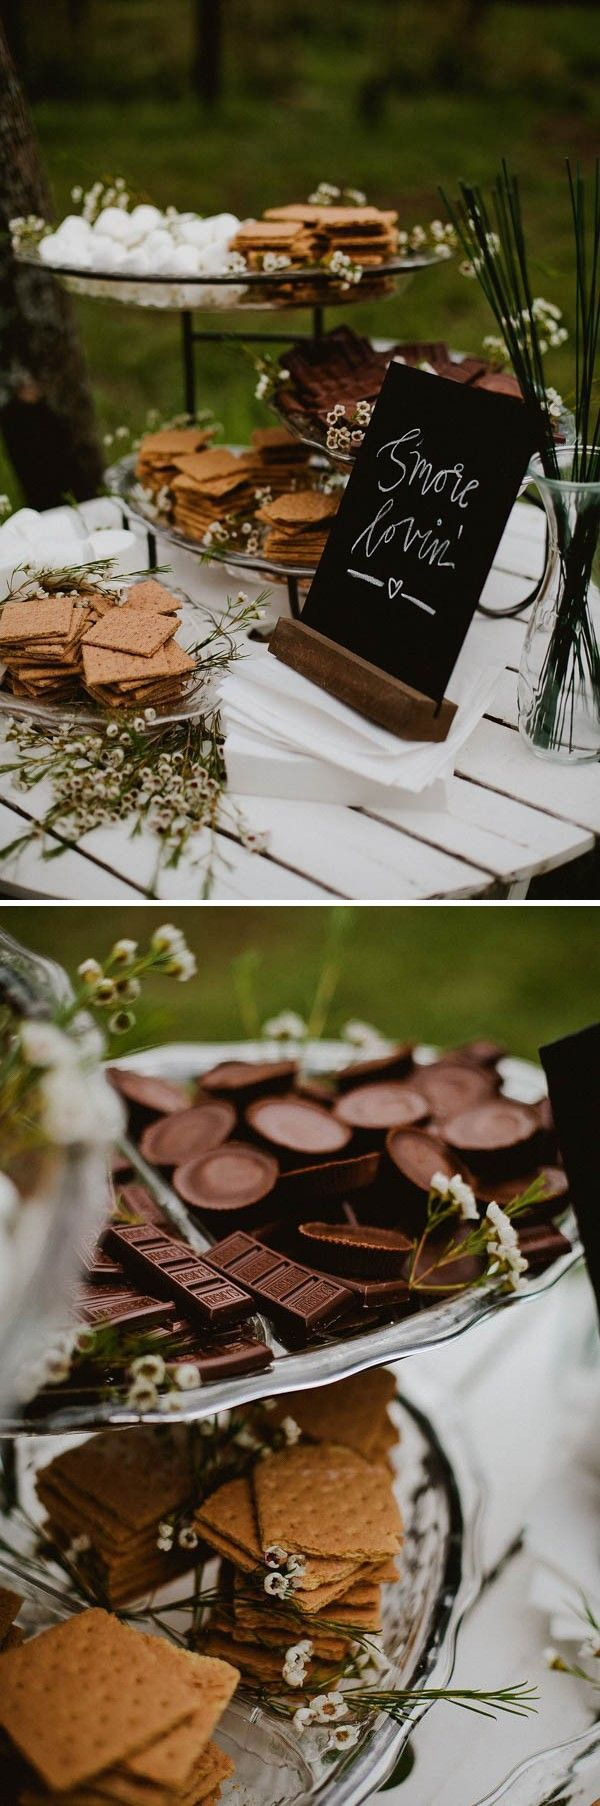 19 Super Sweet Wedding Dessert Displays